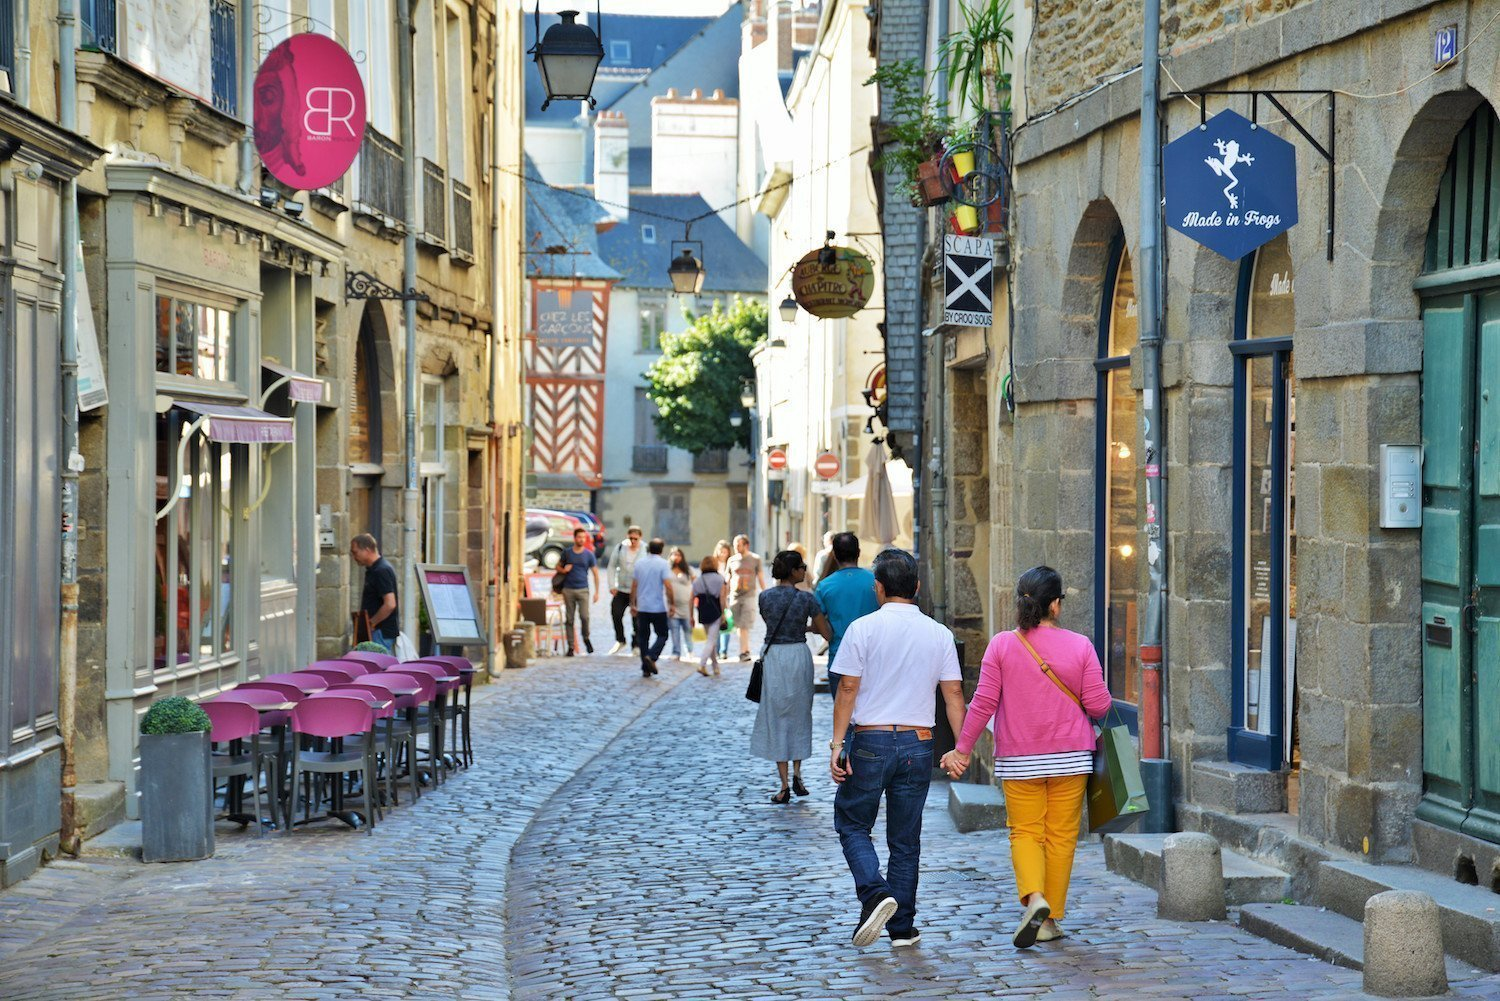 A street in Rennes